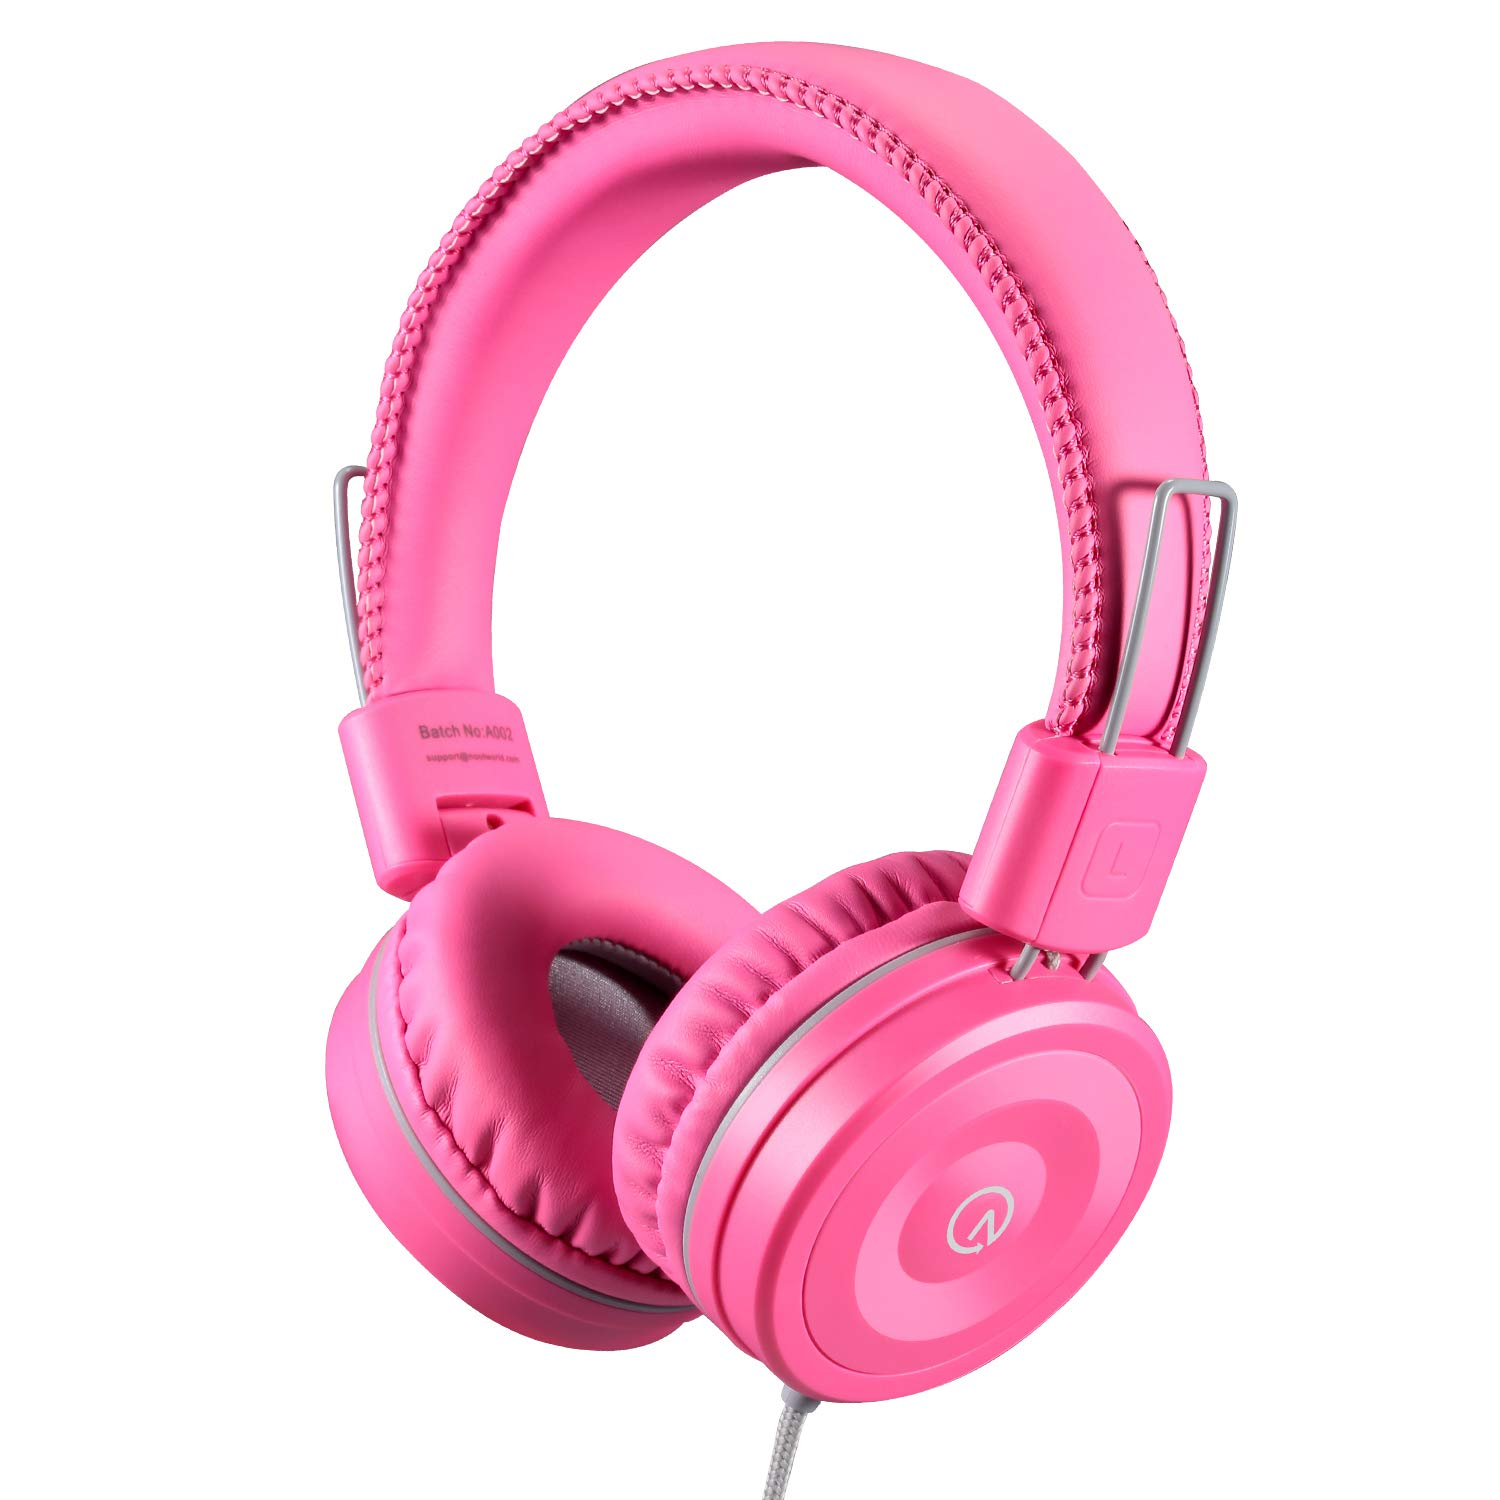 Kids Headphones-noot products K22 Foldable Stereo Tangle-Free 3.5mm Jack Wired Cord On-Ear Headset for Children/Teens/Girls/Smartphones/School/Kindle/Airplane/Plane/Tablet-Flamingo Pink/Gray